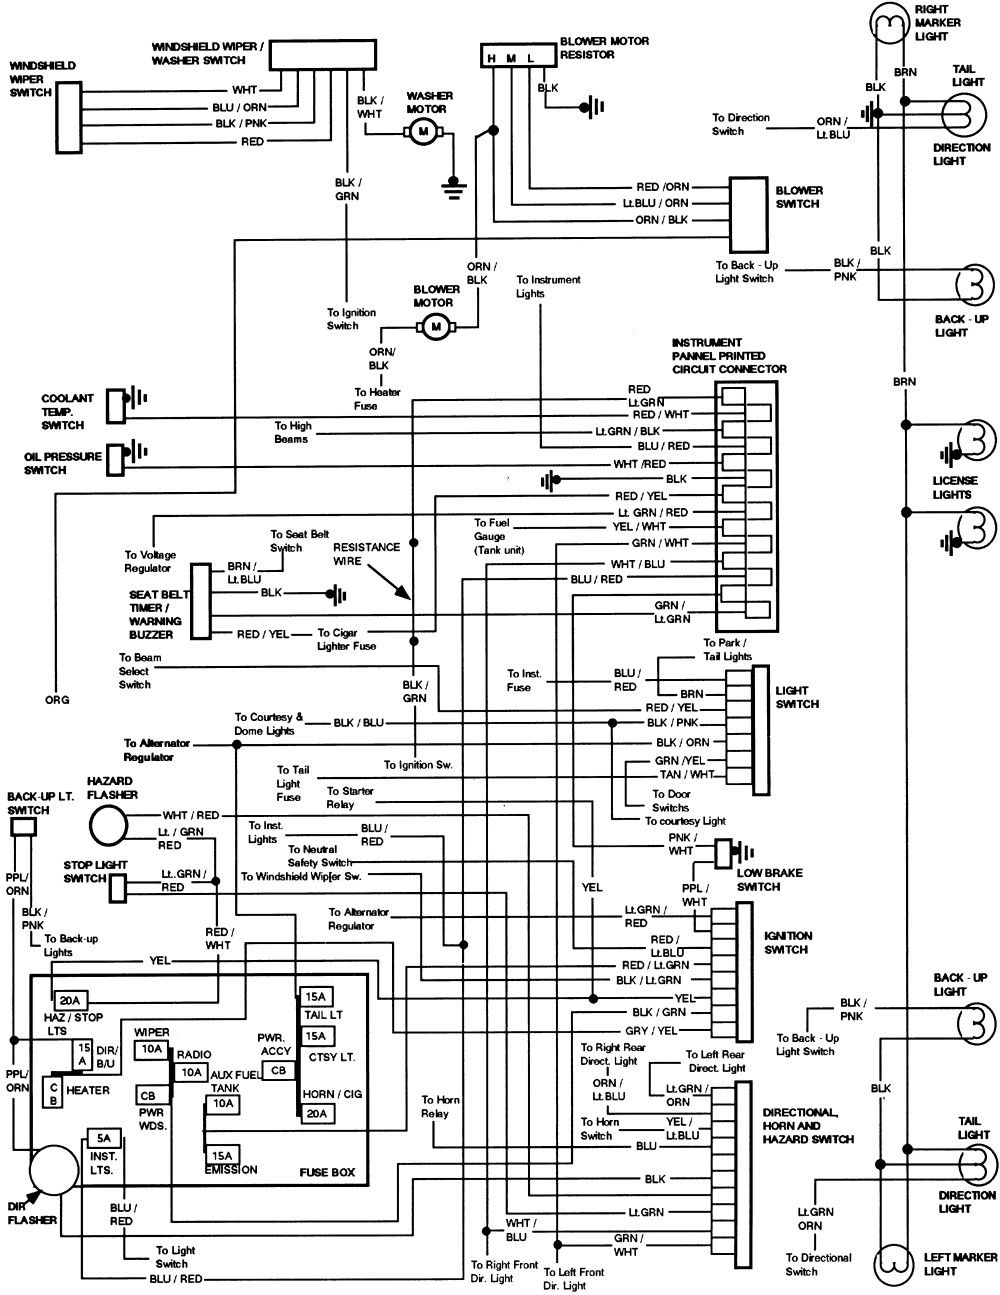 [ZTBE_9966]  29 Ford Alternator Wiring Diagram - bookingritzcarlton.info | Diagram  design, Ford f150, F150 | 1988 Ford F 250 Wiring Diagram |  | Pinterest